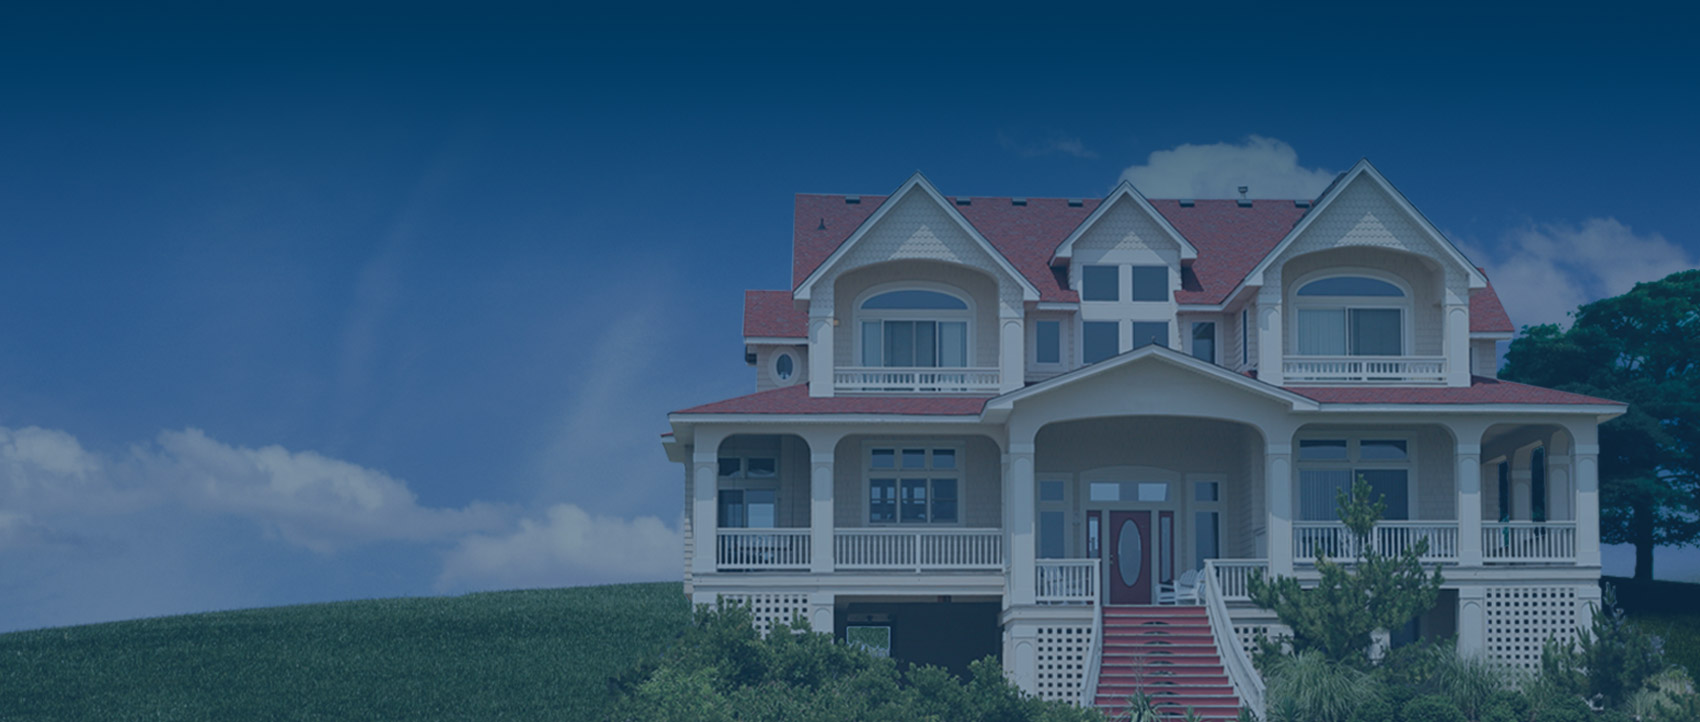 Certified Pre-Owned Home Inspections in Ashburn